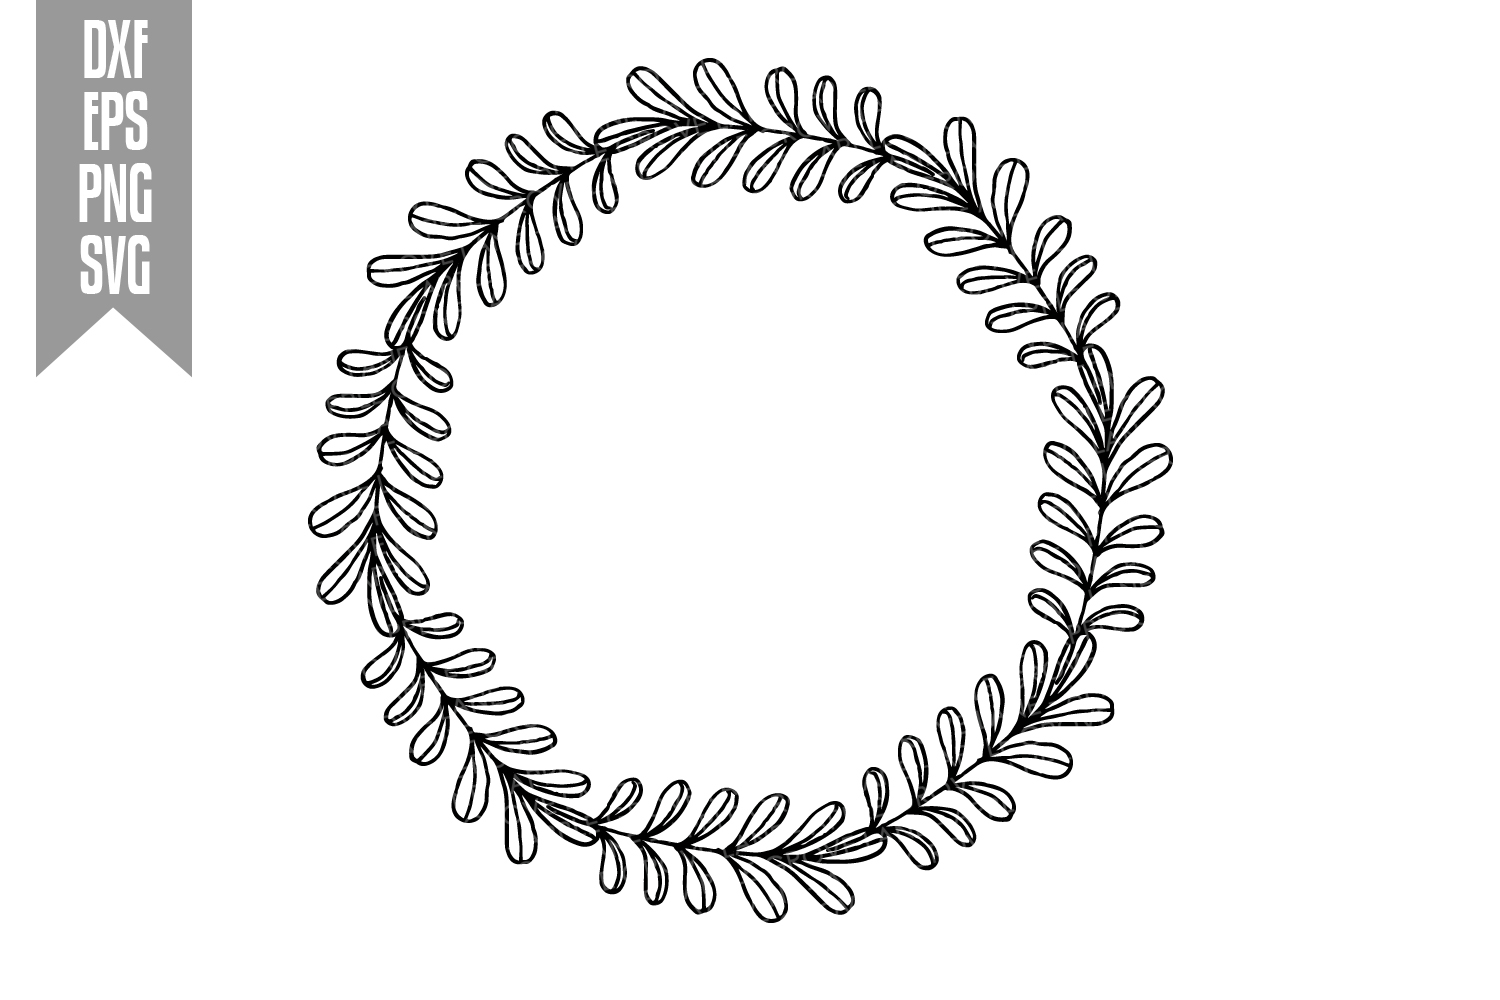 Wreath Svg Bundle - 6 designs included - Svg Cut Files example image 11